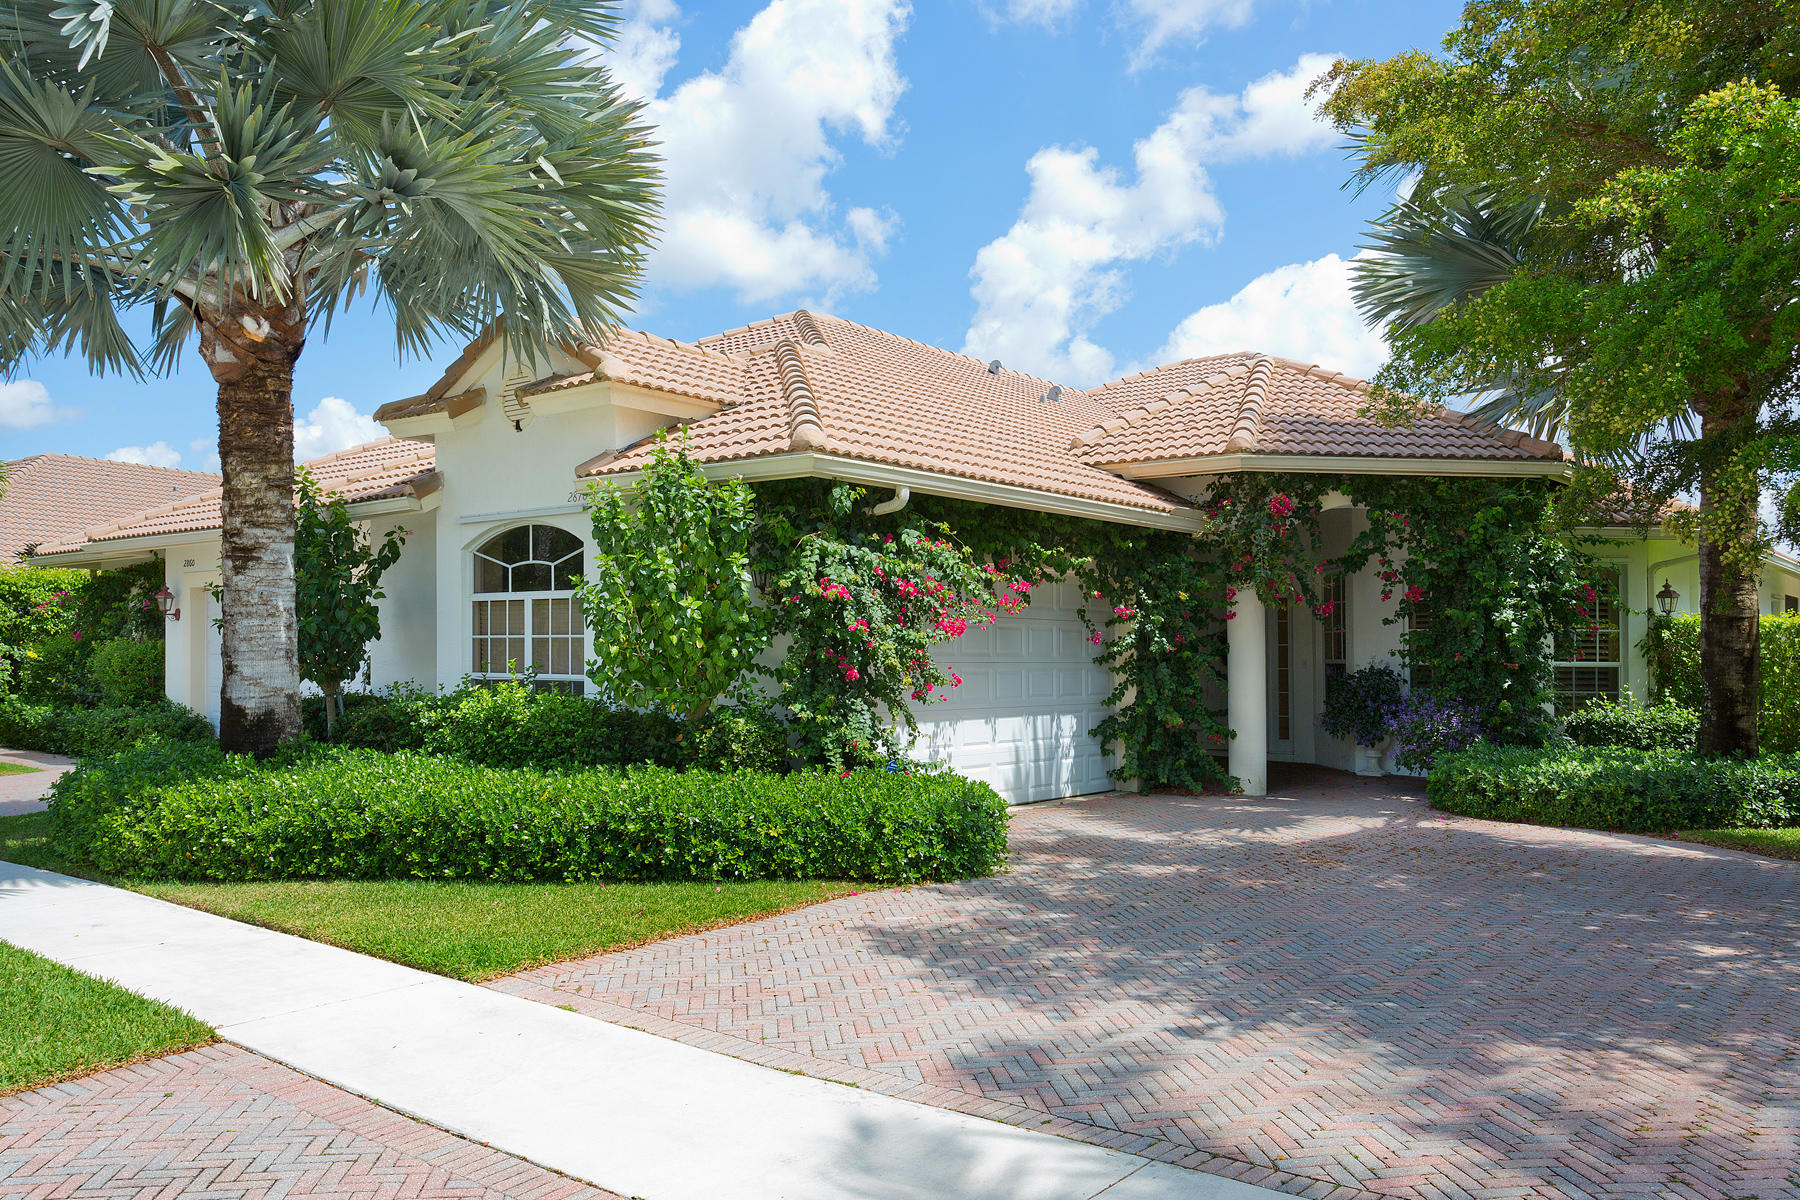 2870 Twin Oaks Way, Wellington, Florida 33414, 3 Bedrooms Bedrooms, ,3 BathroomsBathrooms,Villa,For Sale,Palm Beach Polo,Twin Oaks,RX-10502348